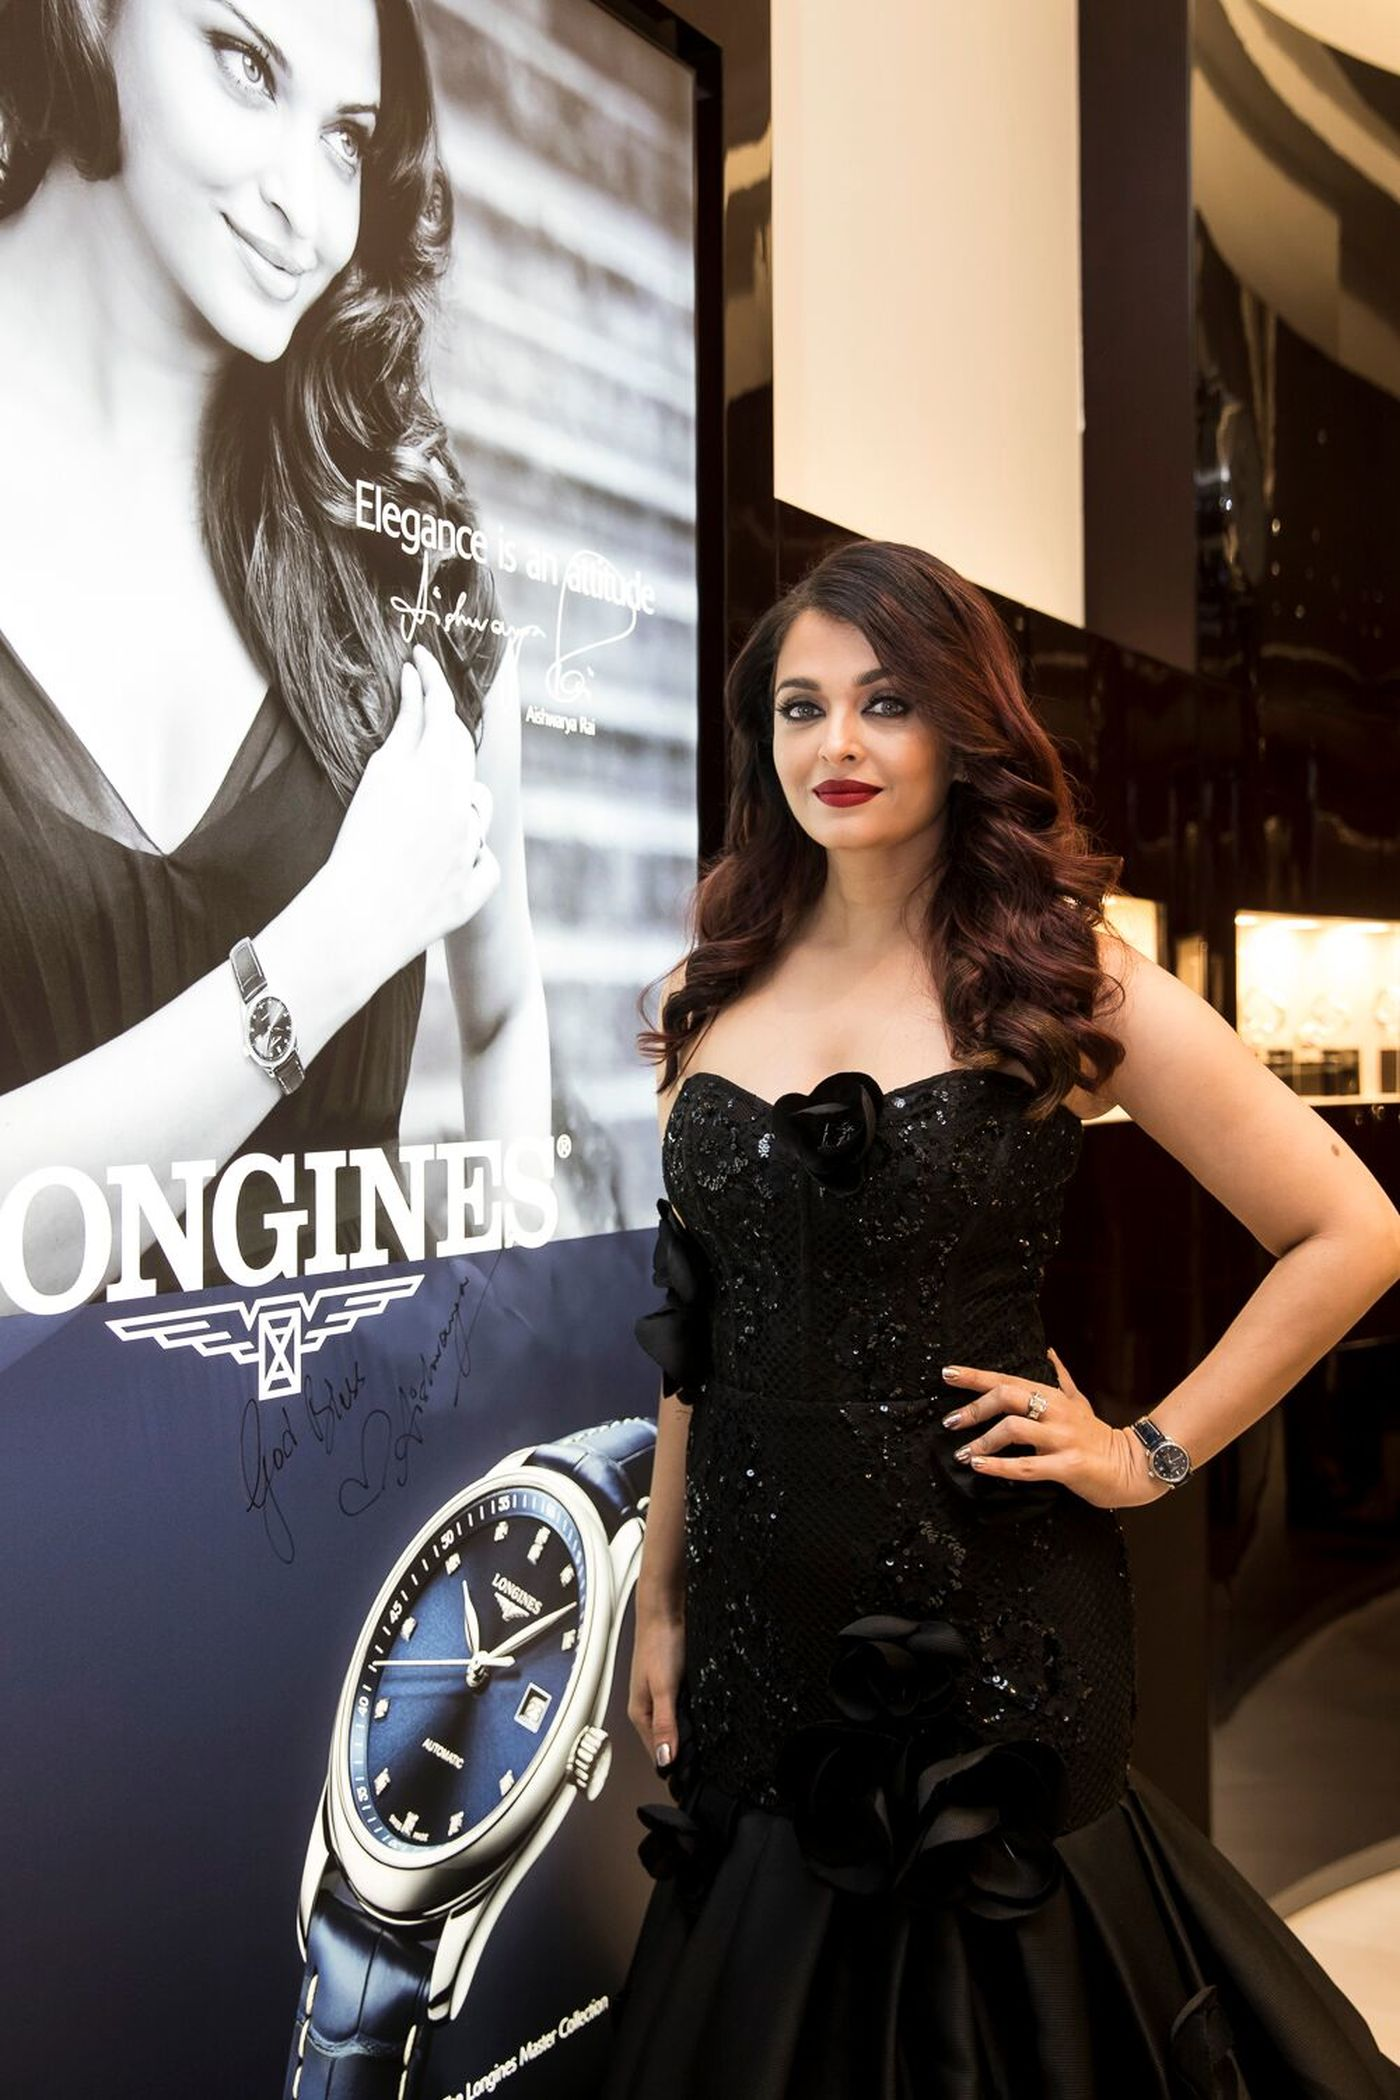 Longines Commonwealth Games Event: Longines and its Ambassador of Elegance Aishwarya Rai Bachchan welcome the 2018 Queen's Baton to the brand new Longines boutique in Sydney  1